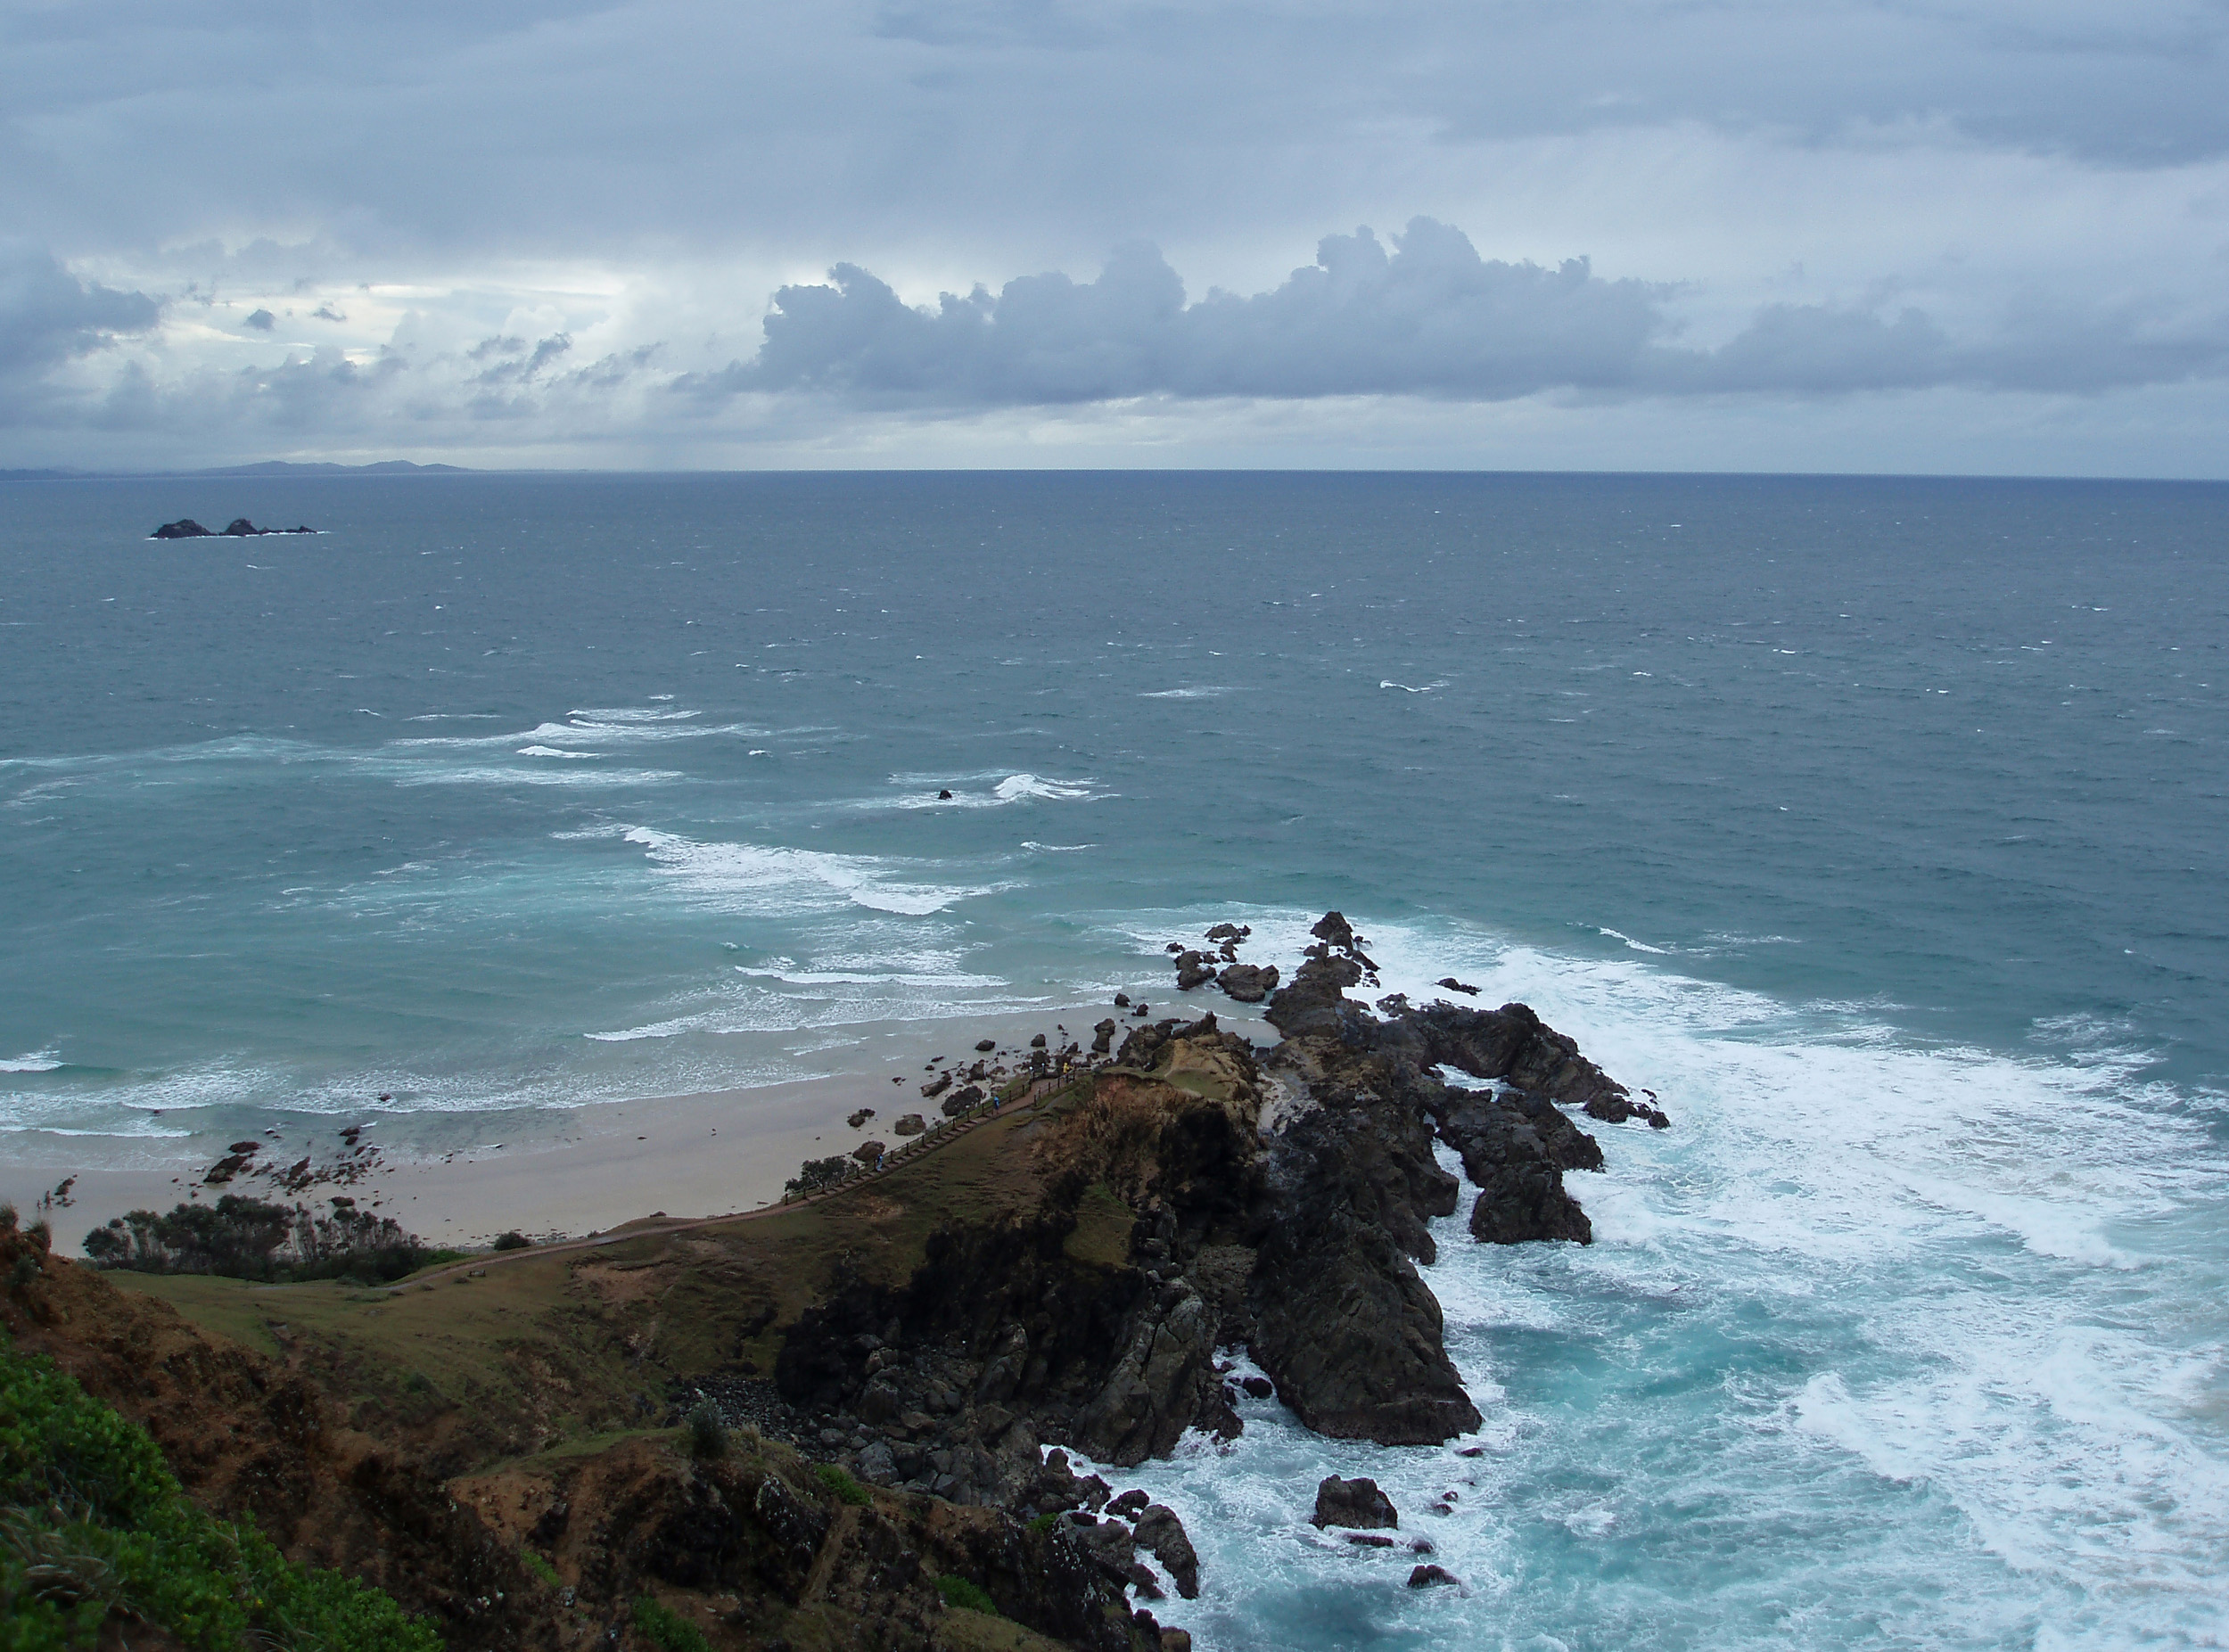 looking down at rocks at the bottom of the cliffs of cape byron, mainland australias eastern most point